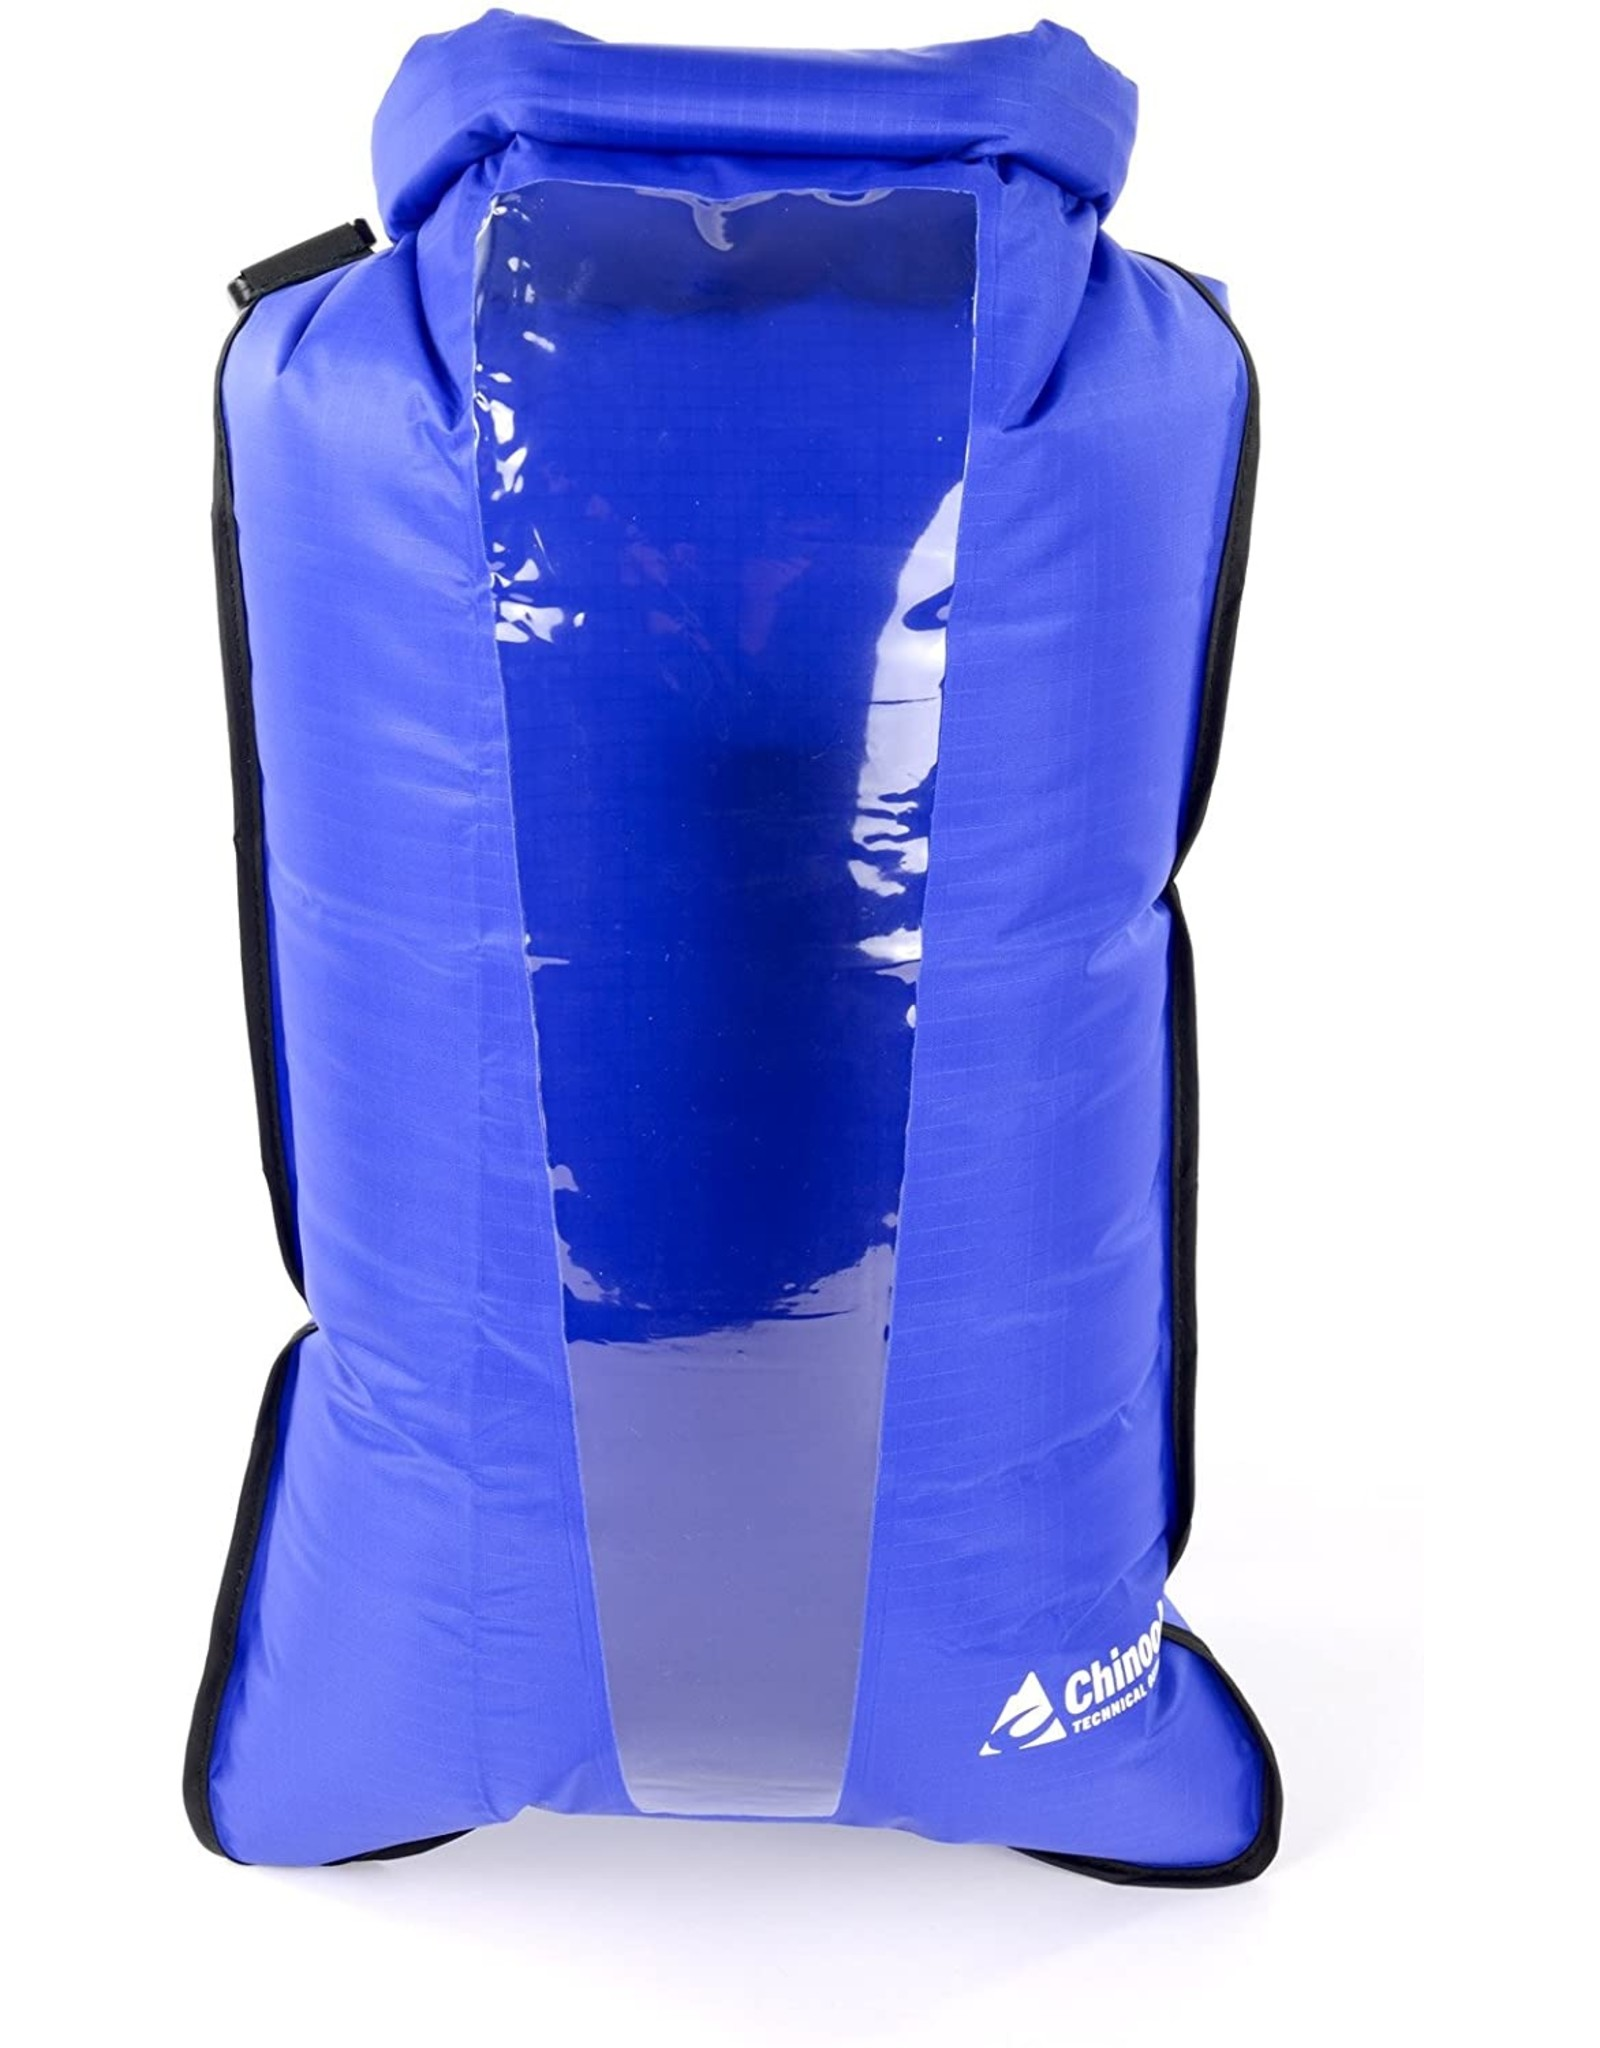 CHINOOK TECHNICAL OUTDOOR AQUAVIEW WATERPROOF DRYBAG 30L